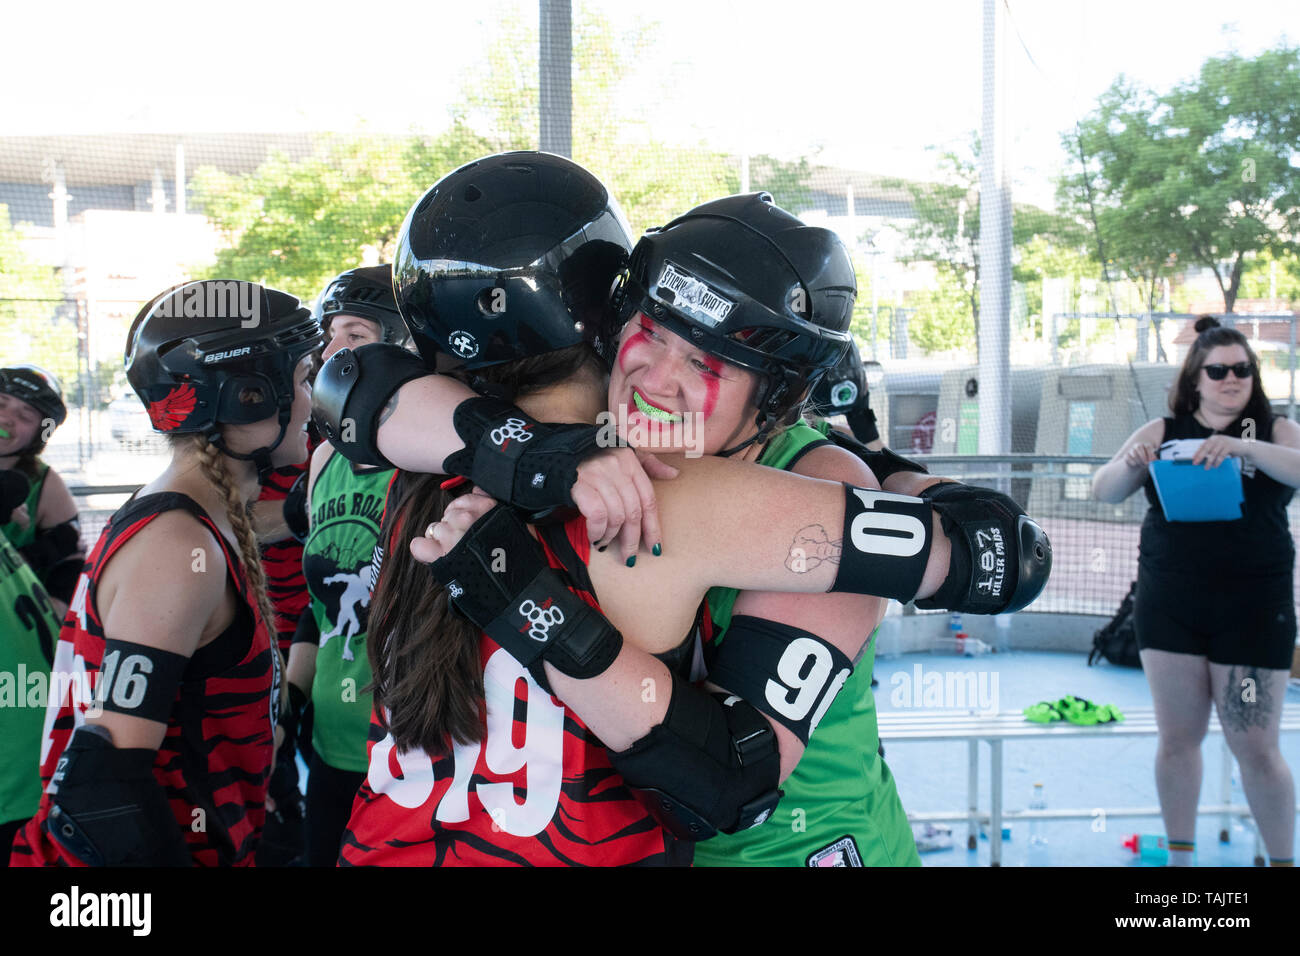 Madrid, Spain. 25th May, 2019. Players of Gothenburg Roller Derby and Roller Derby Madrid celebrating the end of the game. - Stock Image